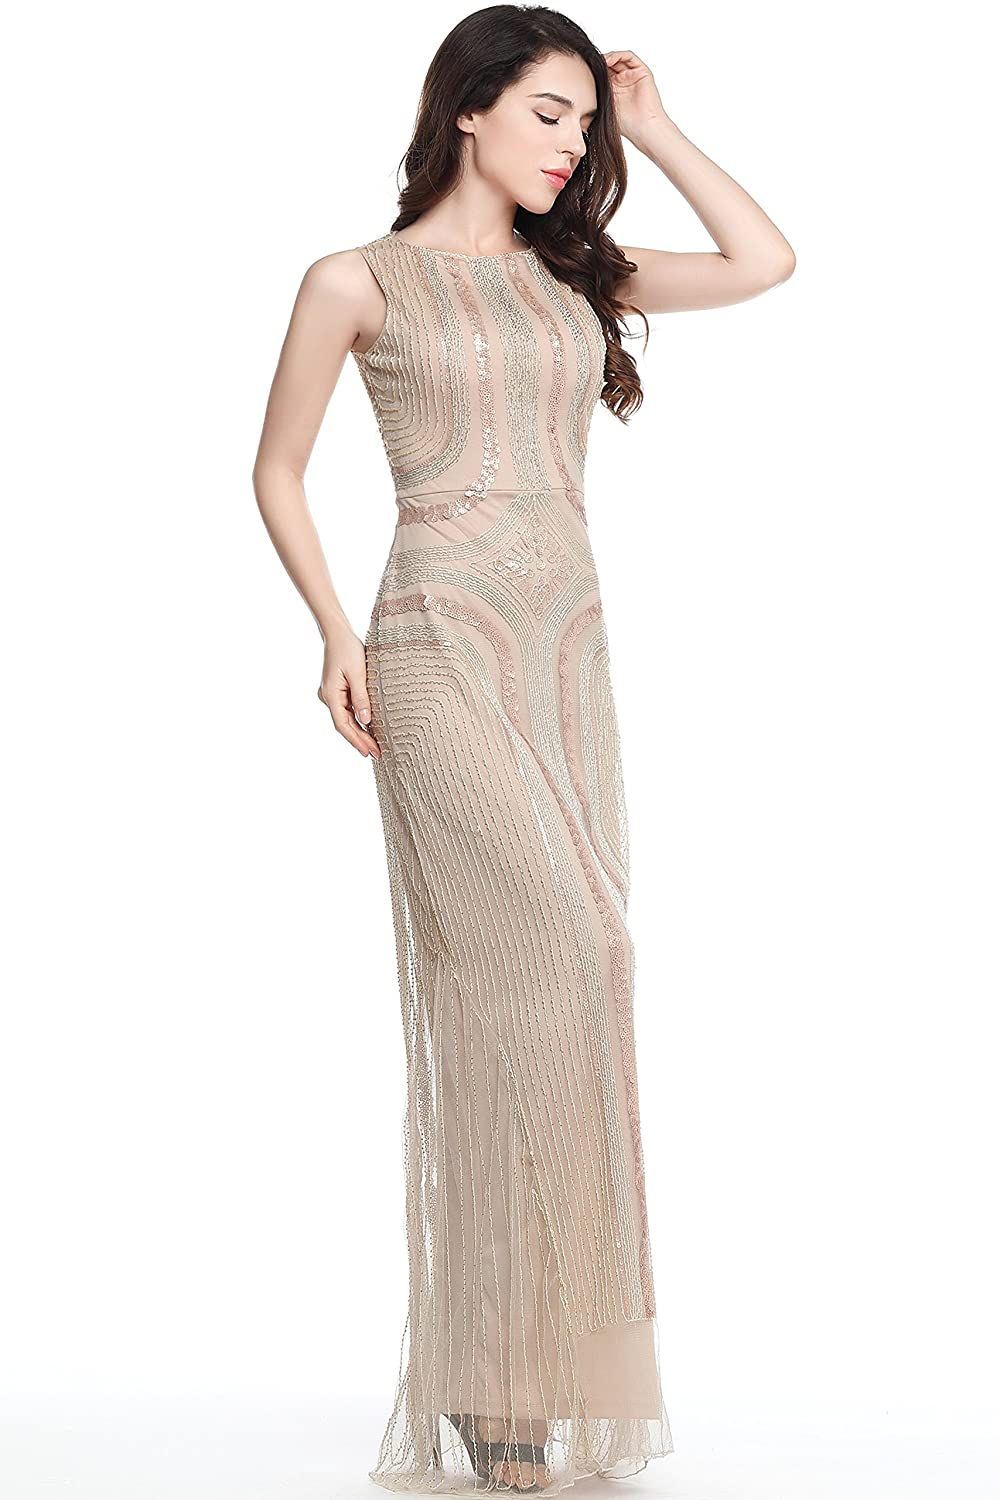 1920s Evening Dresses & Formal Gowns BABEYOND 1920s Flapper Fancy Dress Roaring 20s Gatsby Dress Costume Vintage Sequin Beaded Long Evening Dress $39.99 AT vintagedancer.com